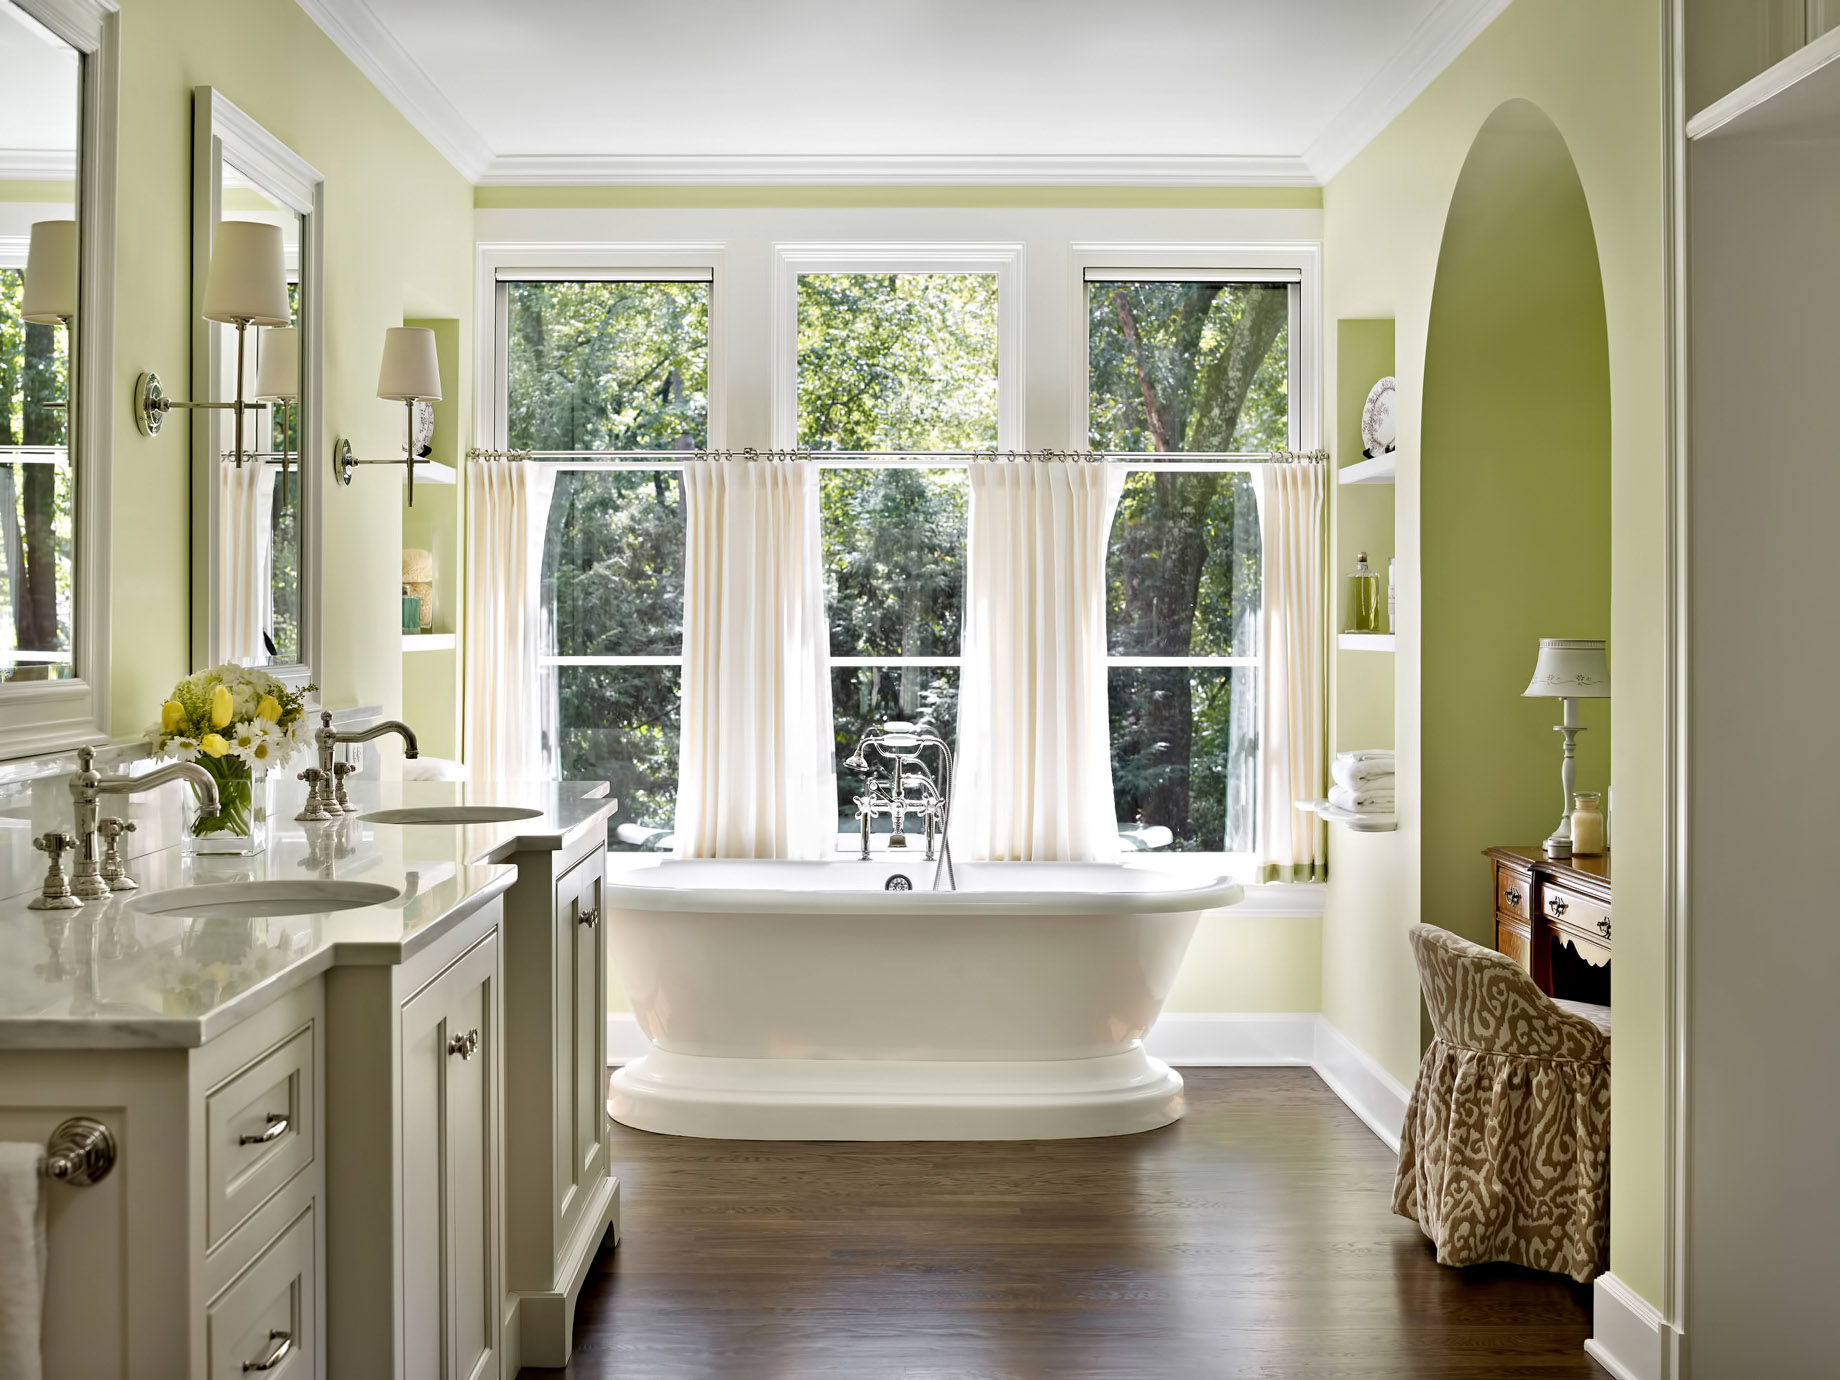 The Balance Between Natural Lighting and Privacy – Top 4 Rules to Consider for a Luxury Bathroom Renovation